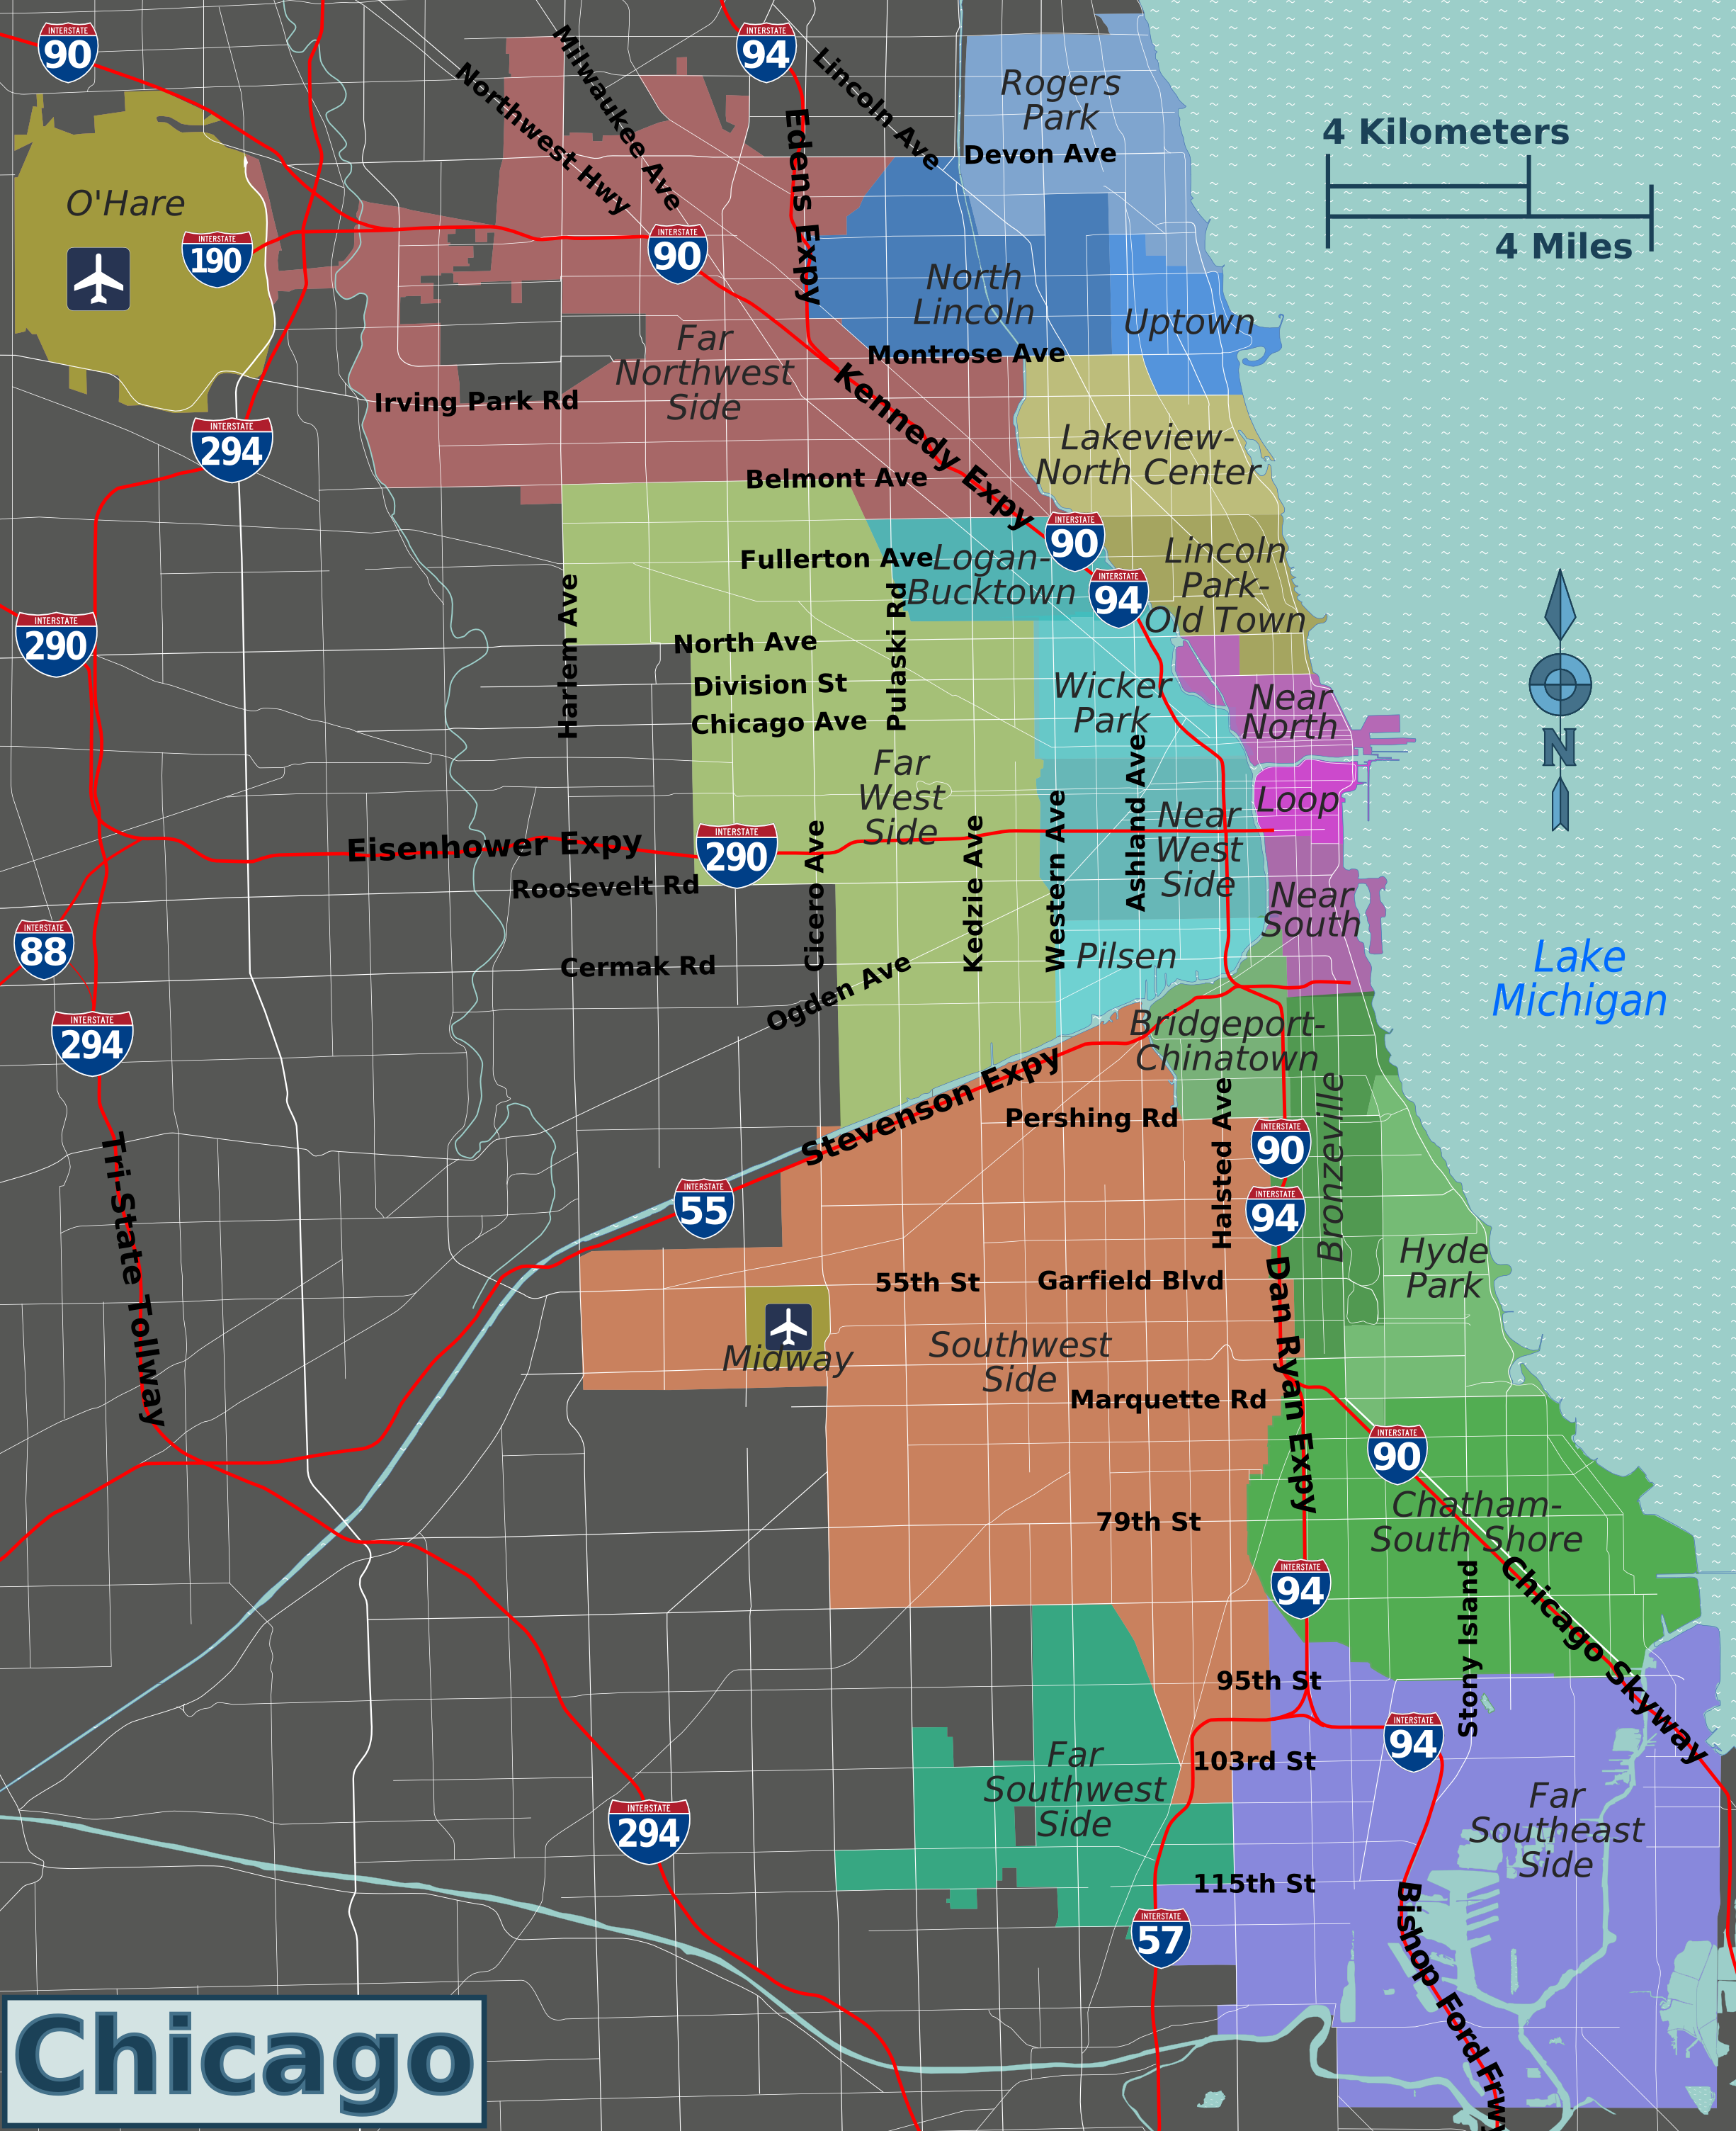 Chicago Districts Map File:Integrated Chicago districts map.png   Wikimedia Commons